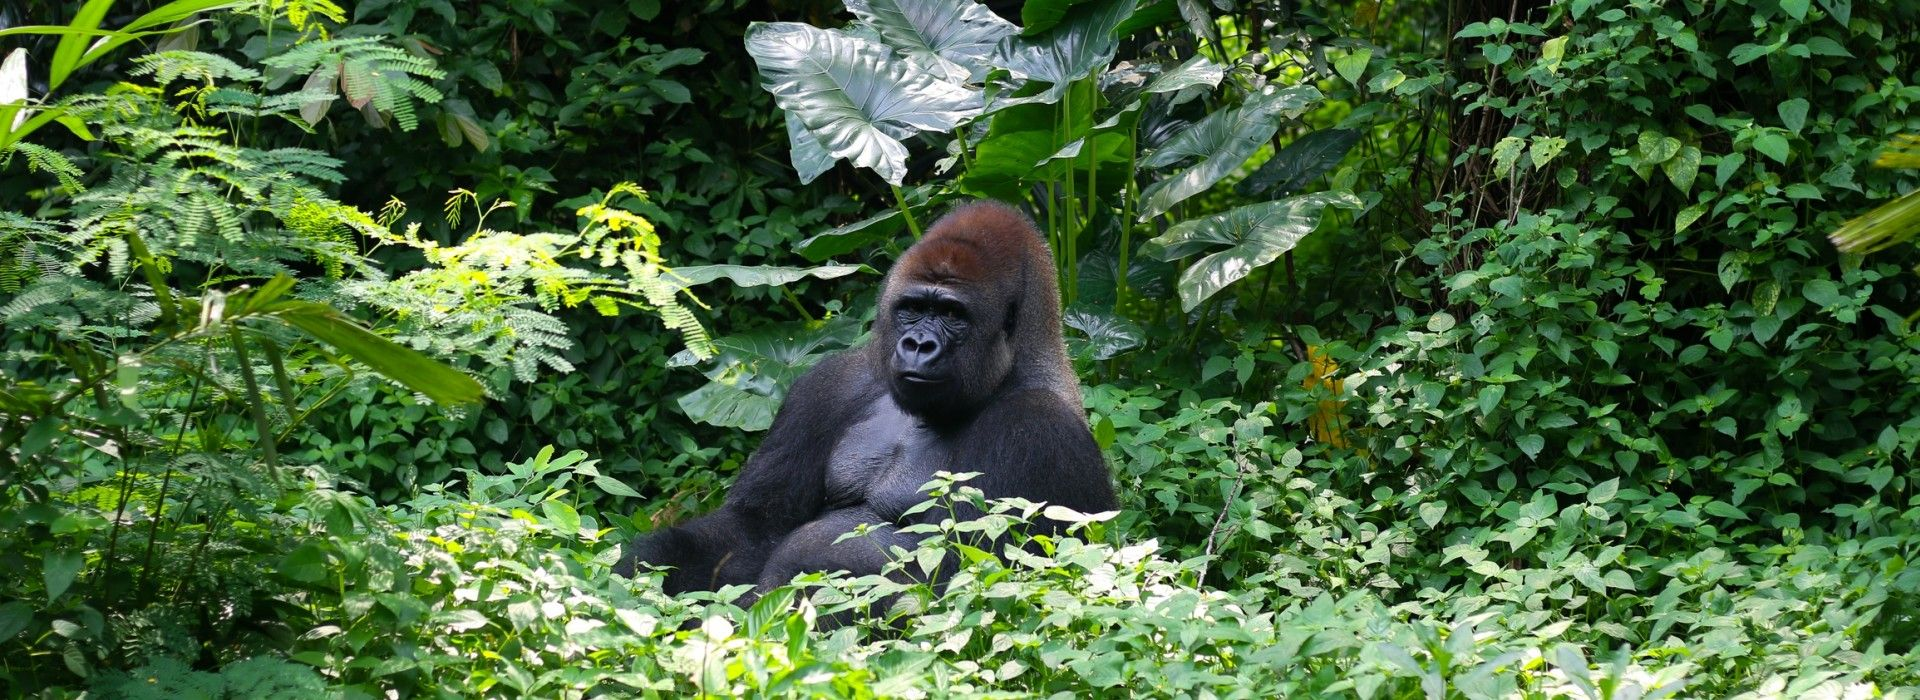 Gorilla and chimpanzee tracking Tours in Volcanoes National Park